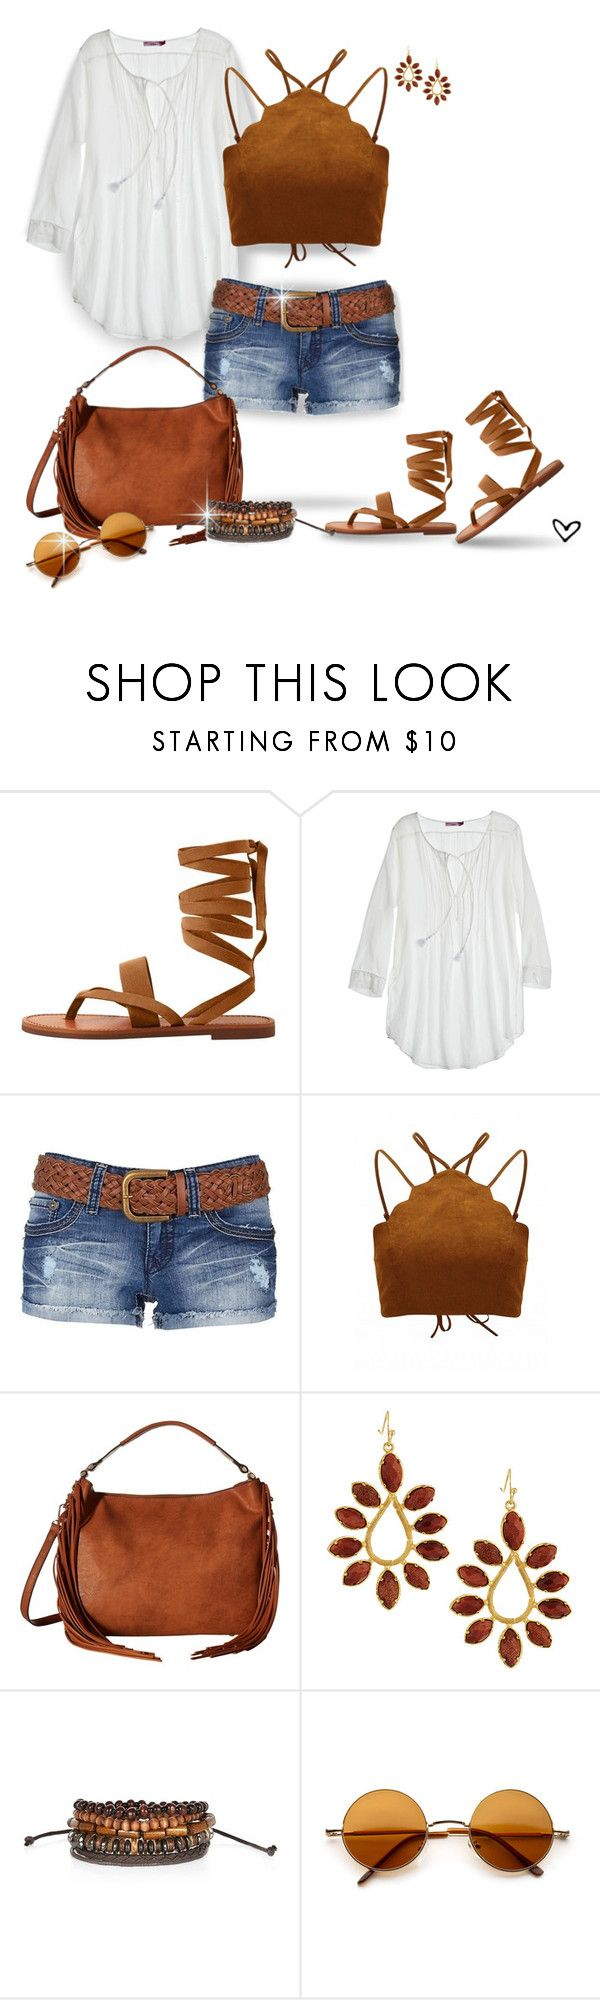 """~Mango.com~ Leather Gladiator Sandals ~"" by justwanderingon ❤ liked on Polyvore featuring MANGO, Calypso St. Barth, YMI, Gabriella Rocha, Kendra Scott, River Island, boho, gladiatorsandals, denimshorts and leathersandals"